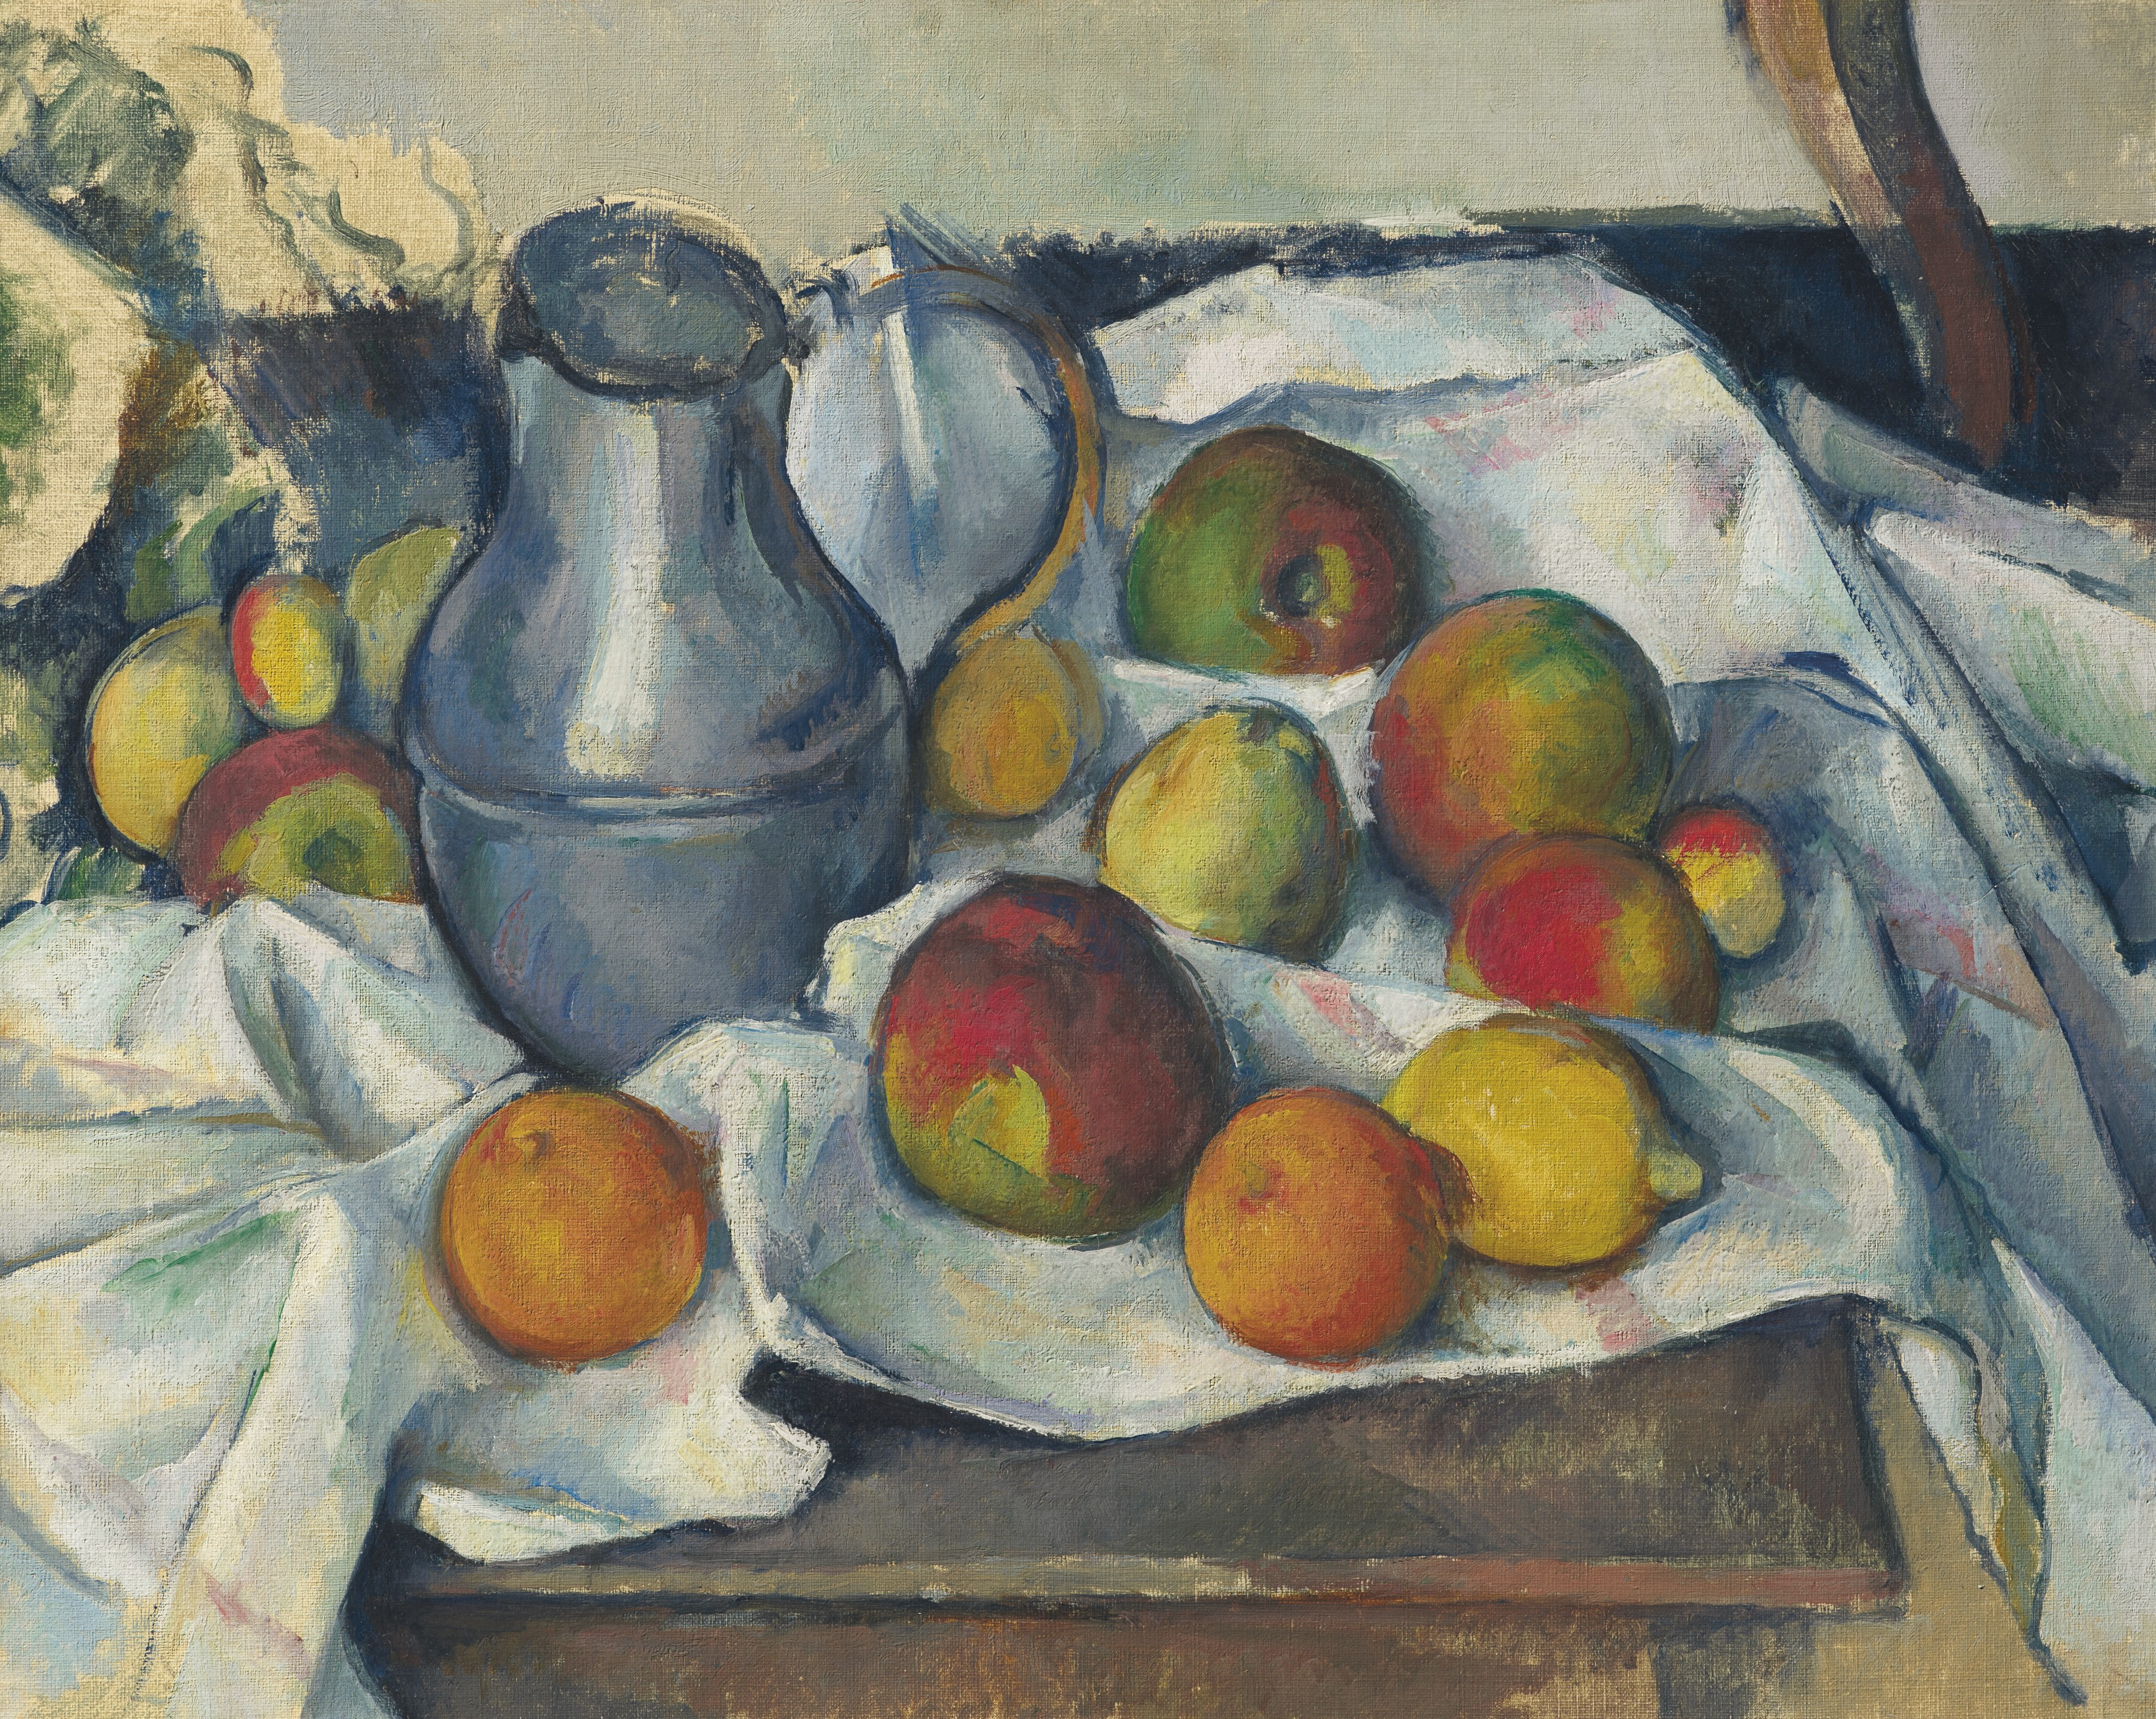 Christie's Unveils S.I. Newhouse Art Collection: Jeff Koons, Andy Warhol, Van Gogh